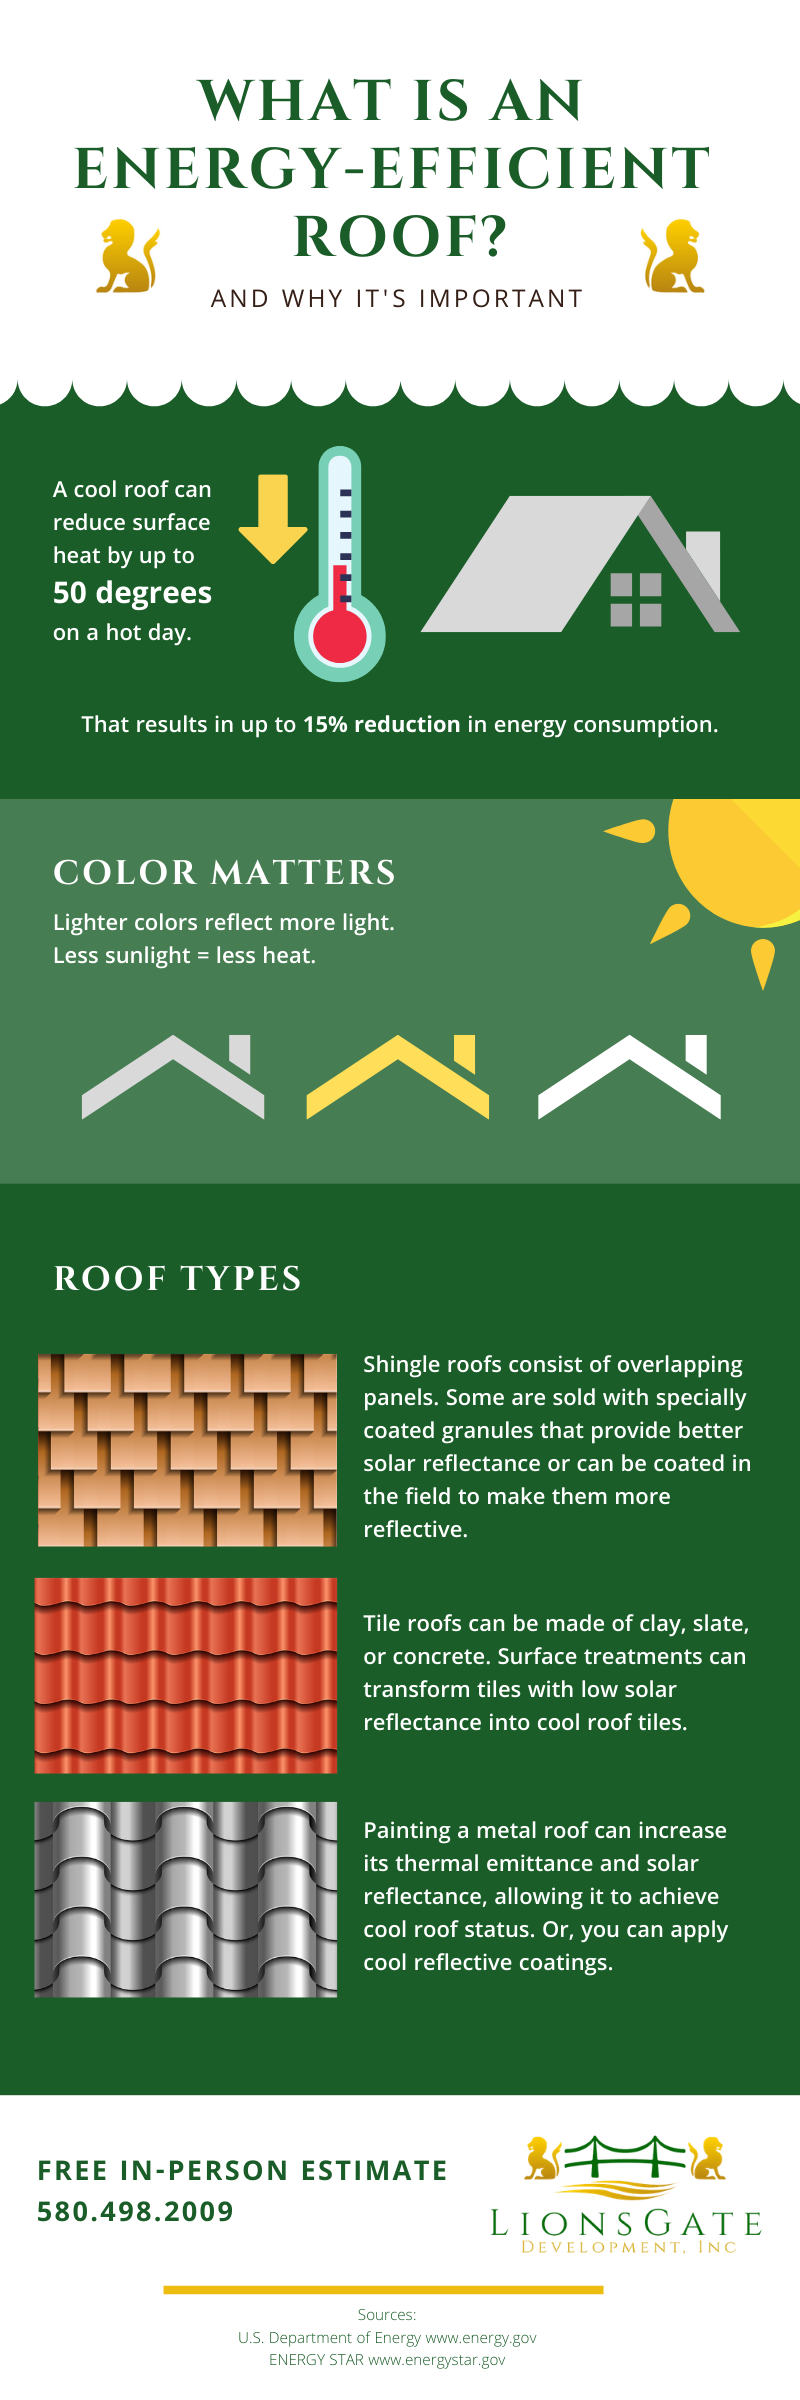 Infographic on what makes an energy-efficient roof - a cool roof can reduce surface heat by up to 50 degrees, and factors include roof colors and roof types